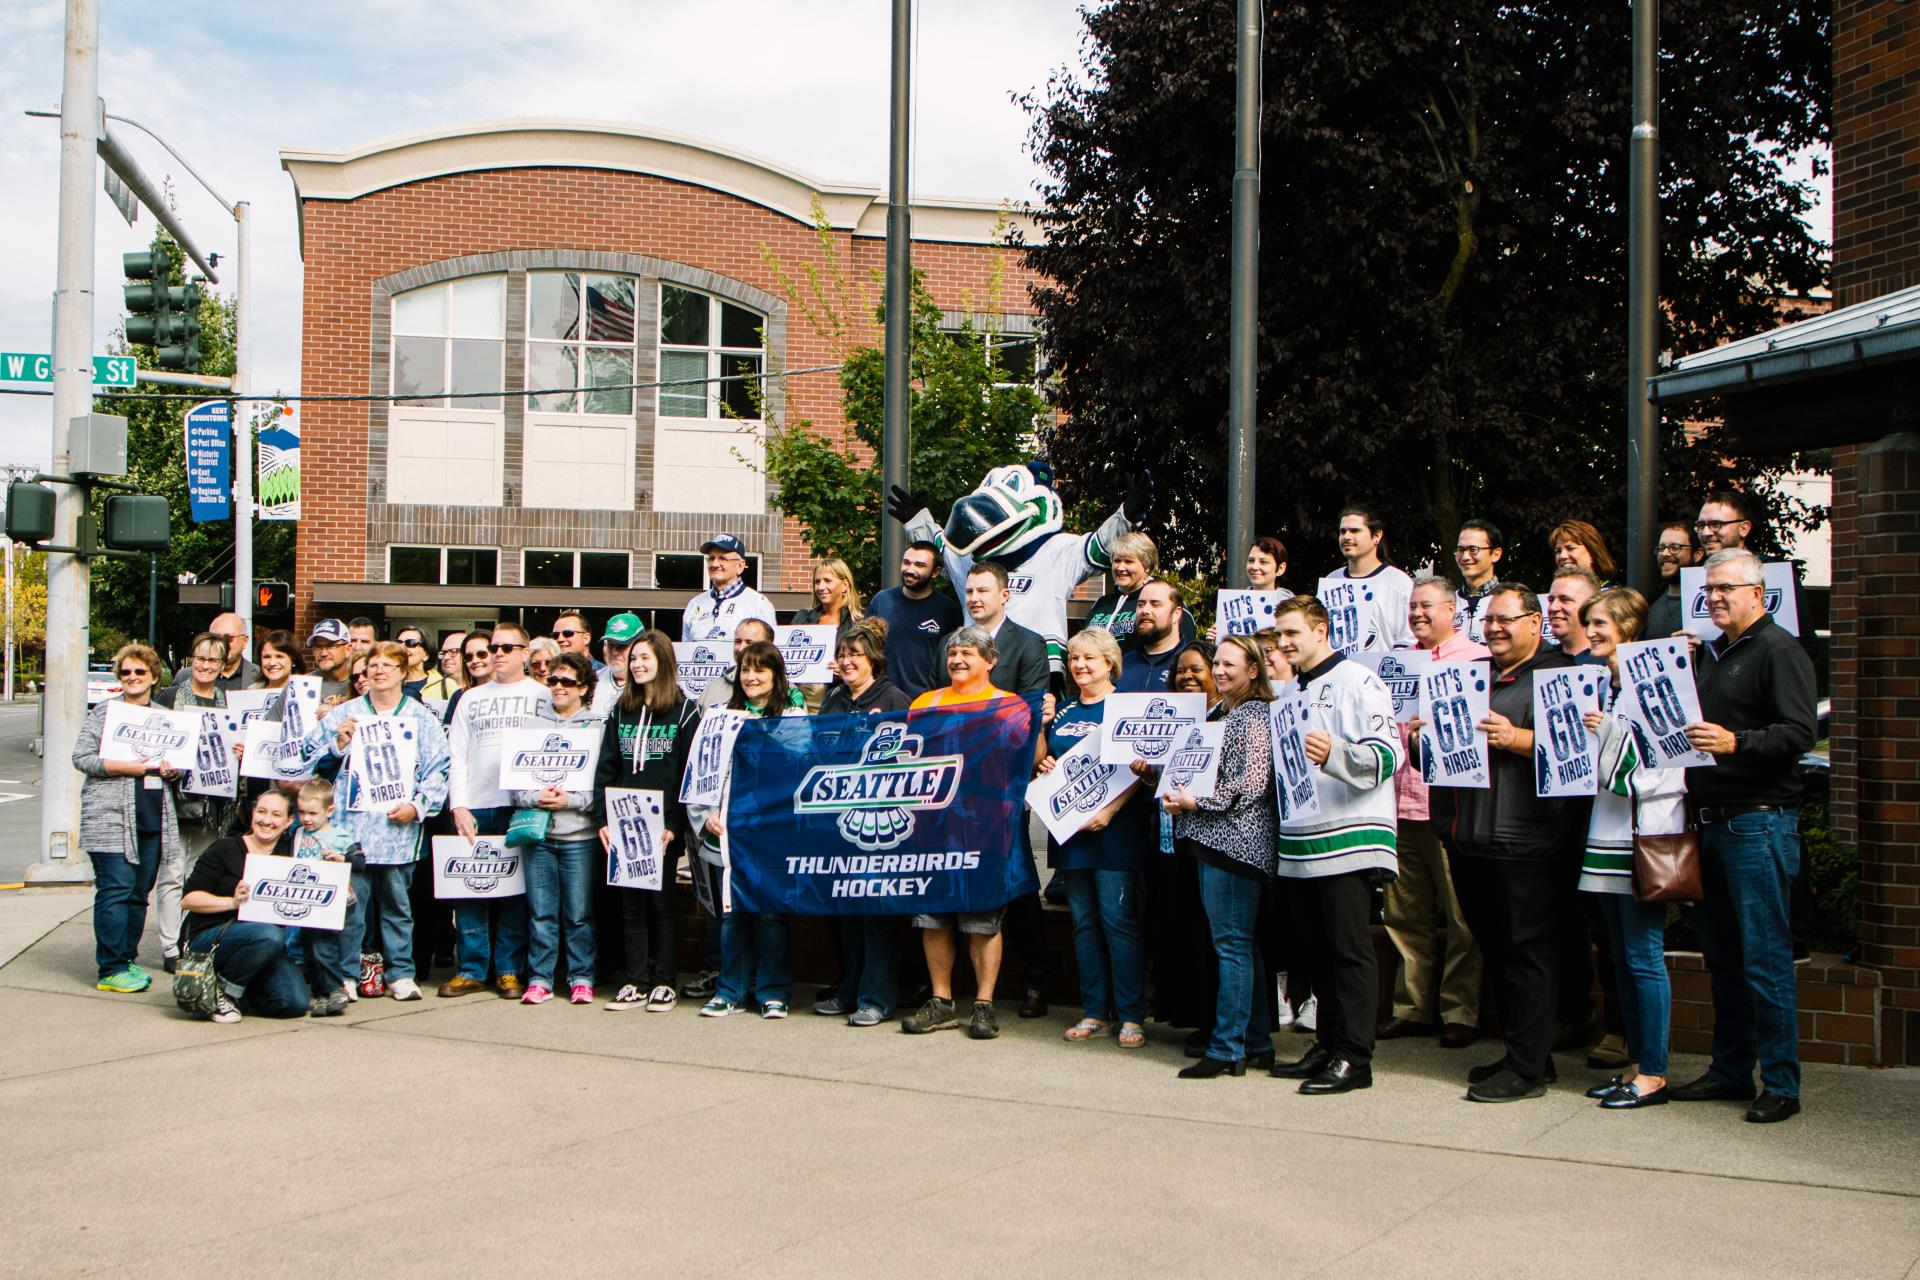 Join us September 20, 2019 to cheer on the Seattle Thunderbirds before their home opener on Saturday.